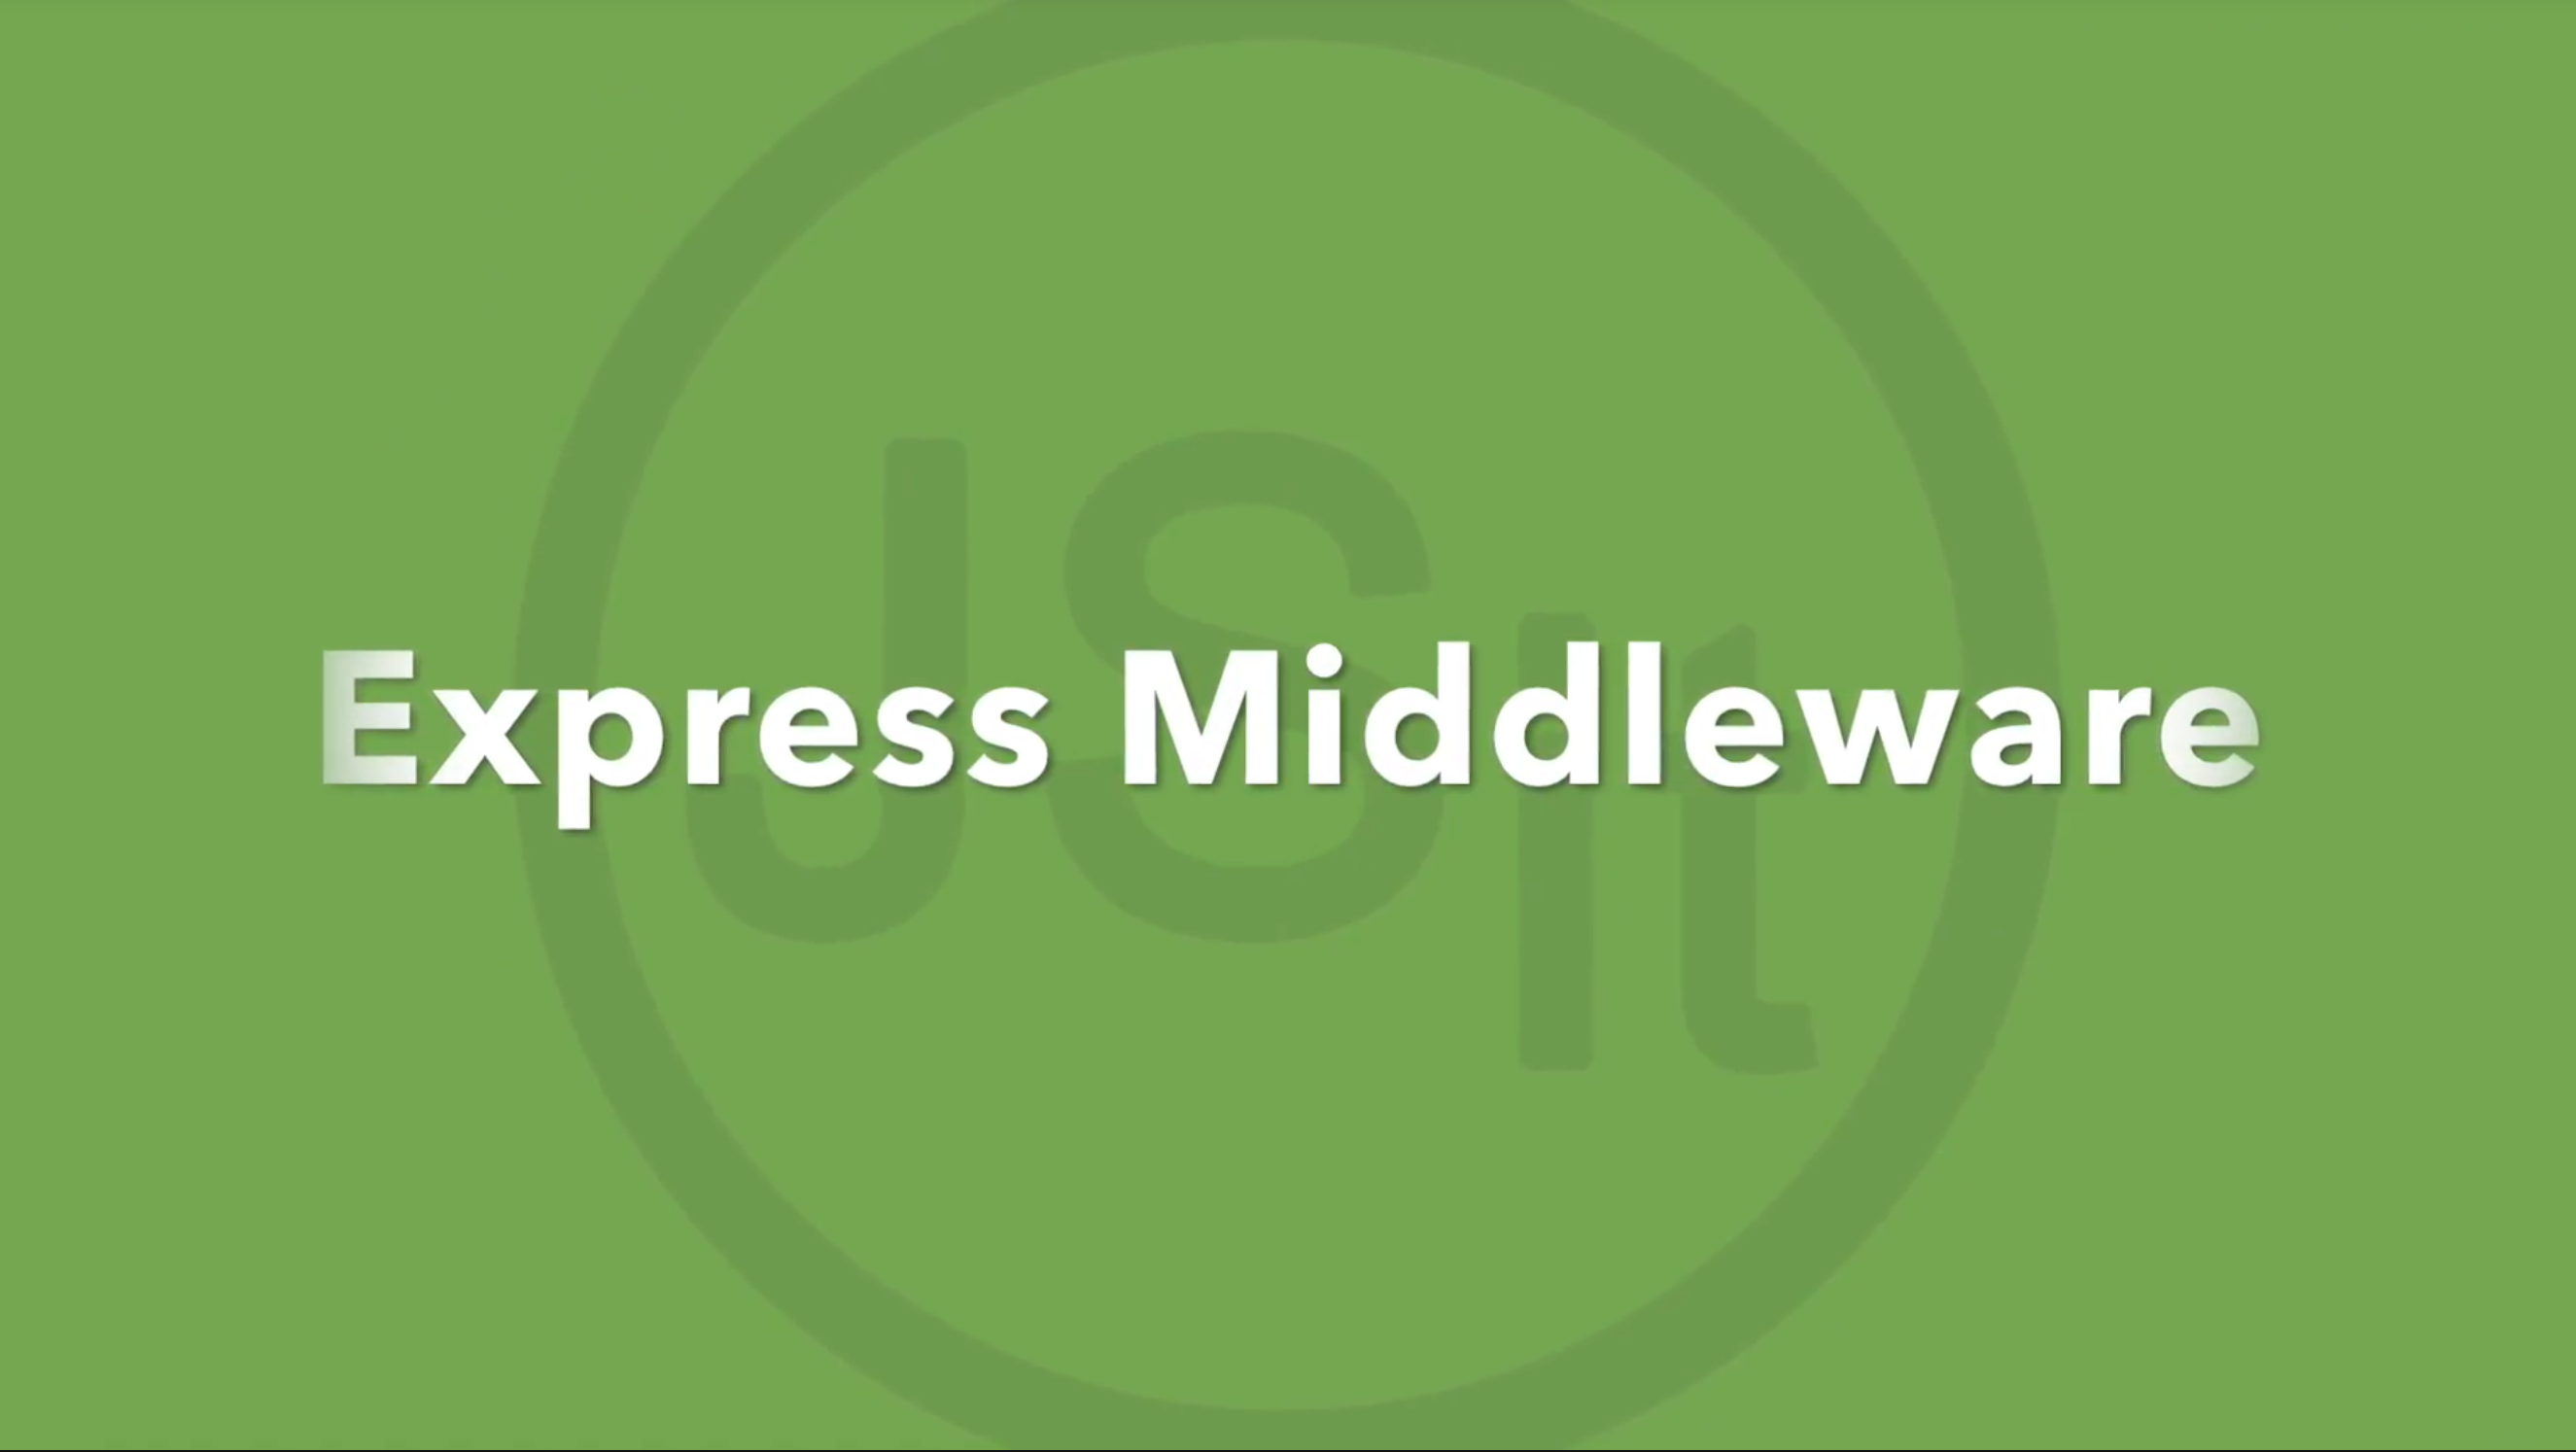 Express middleware